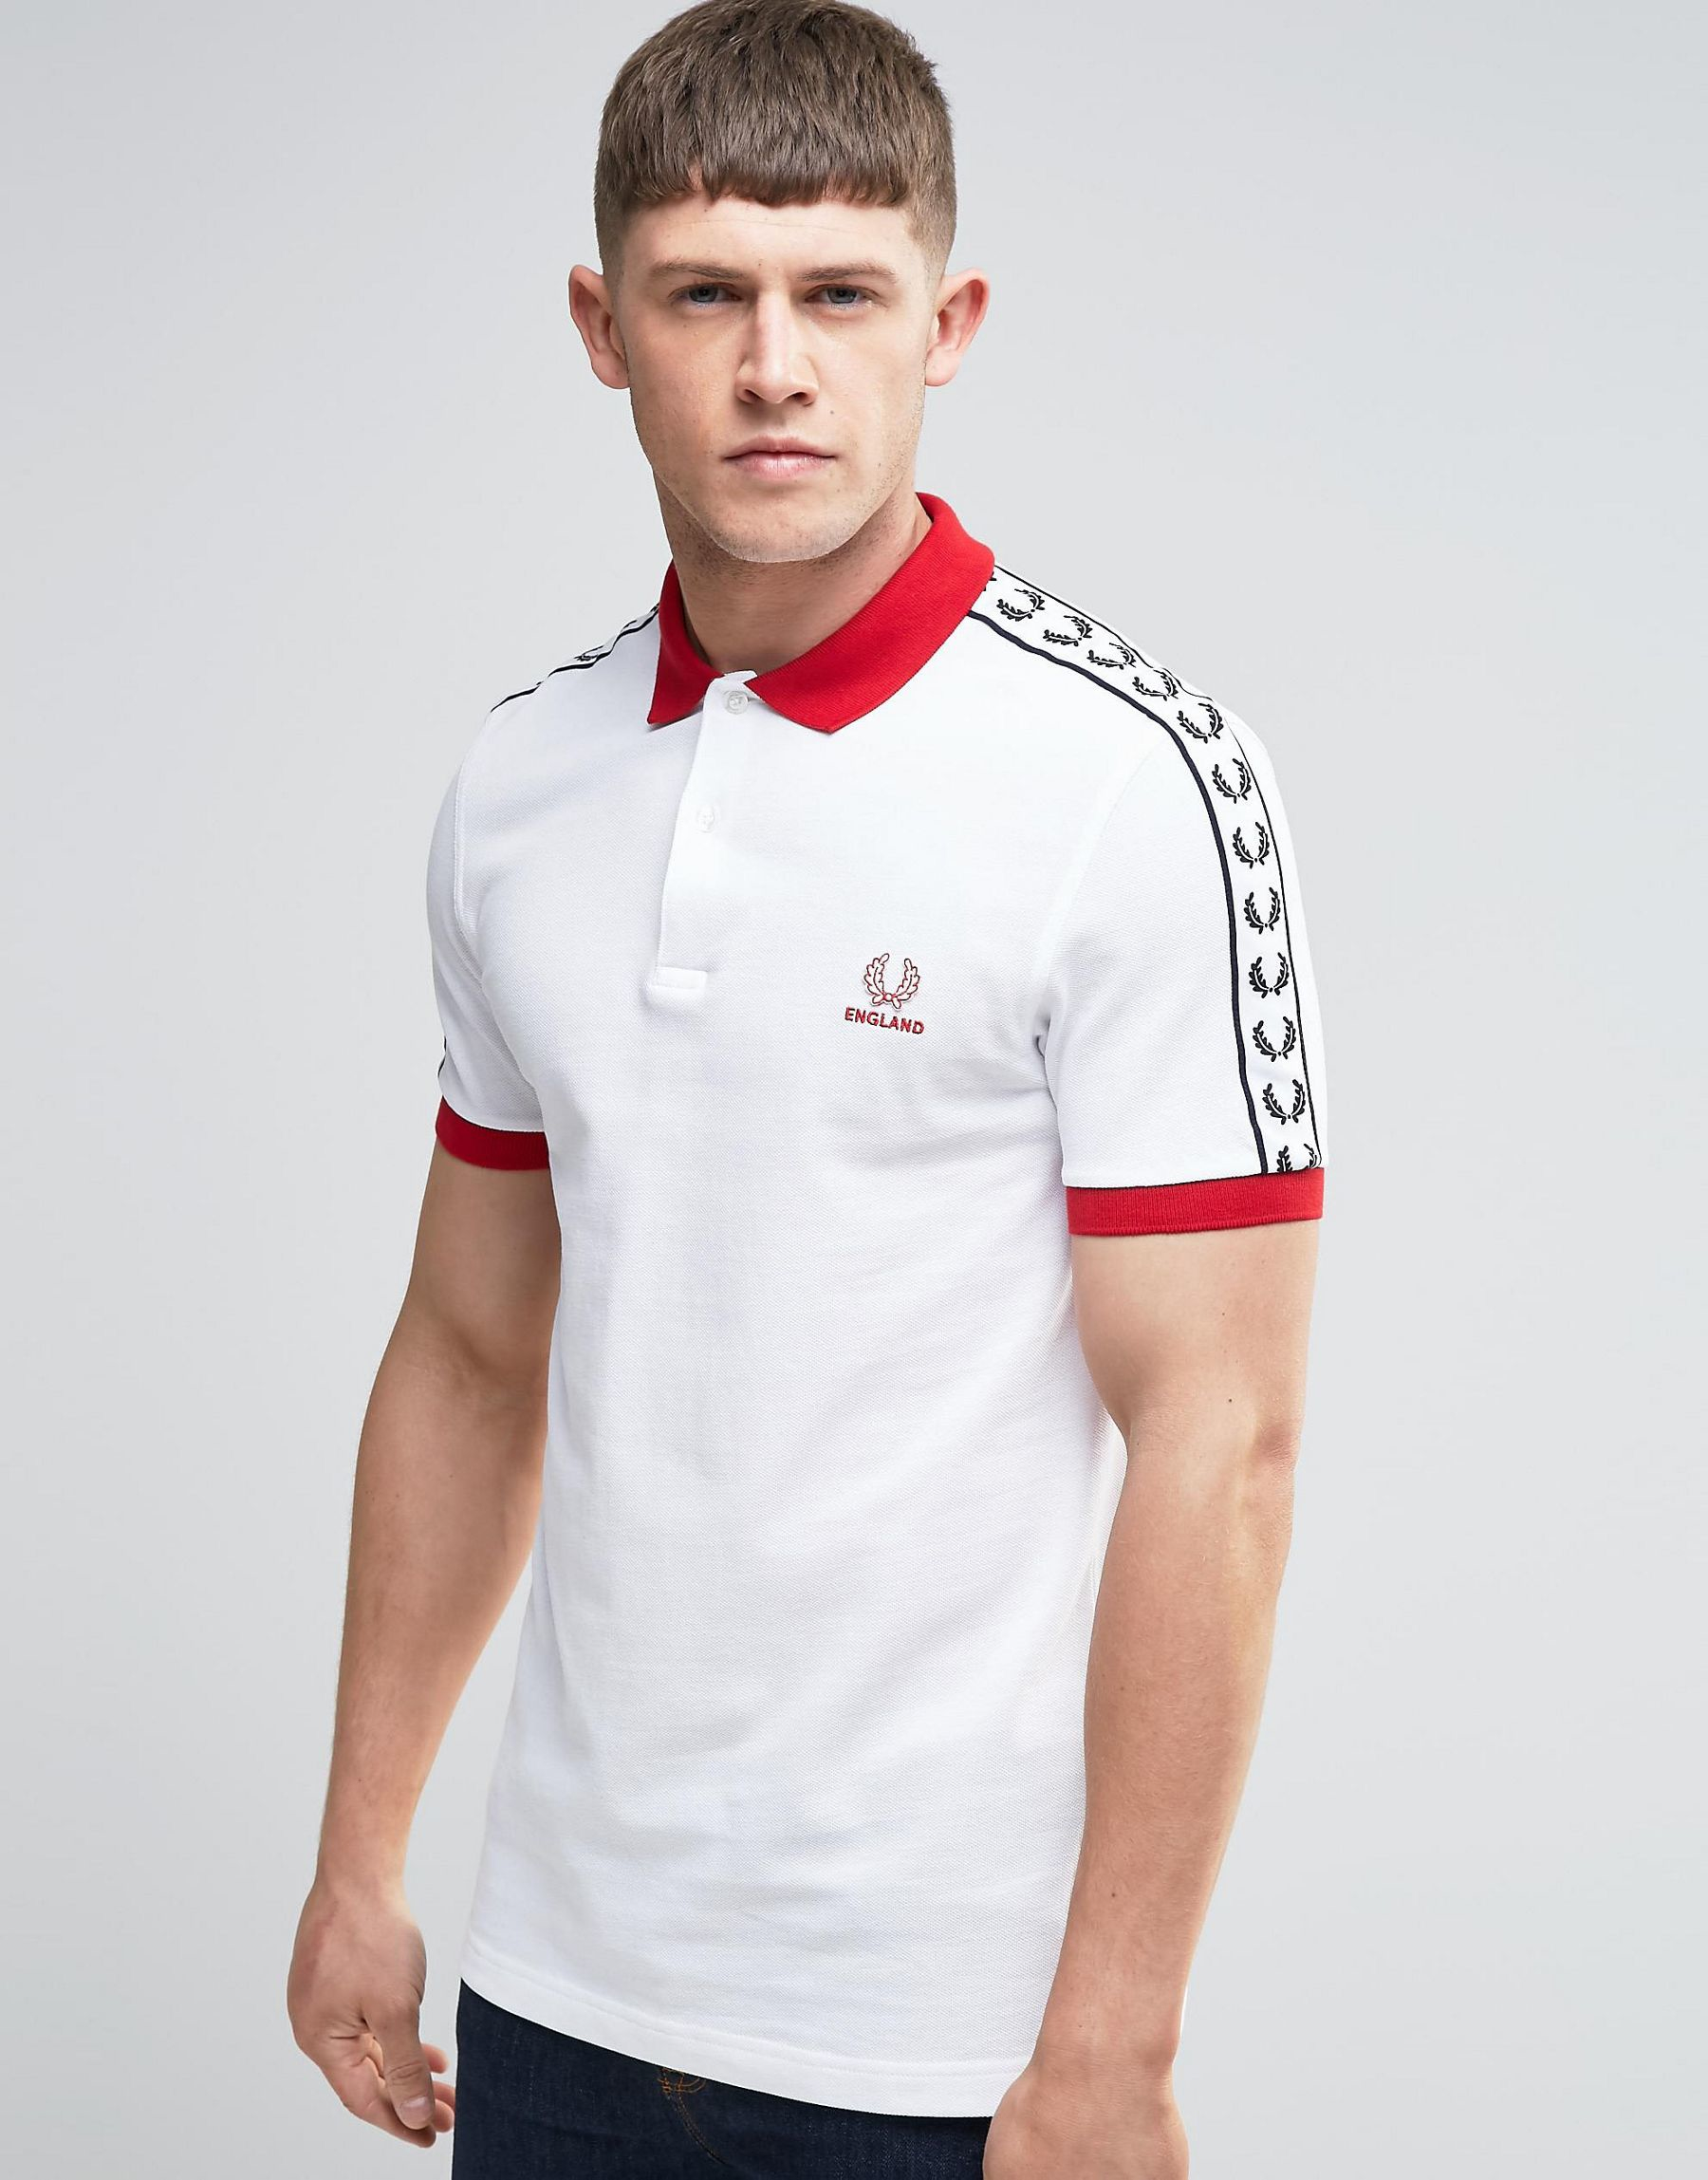 Lyst - Fred Perry England Polo Shirt In White in White for Men